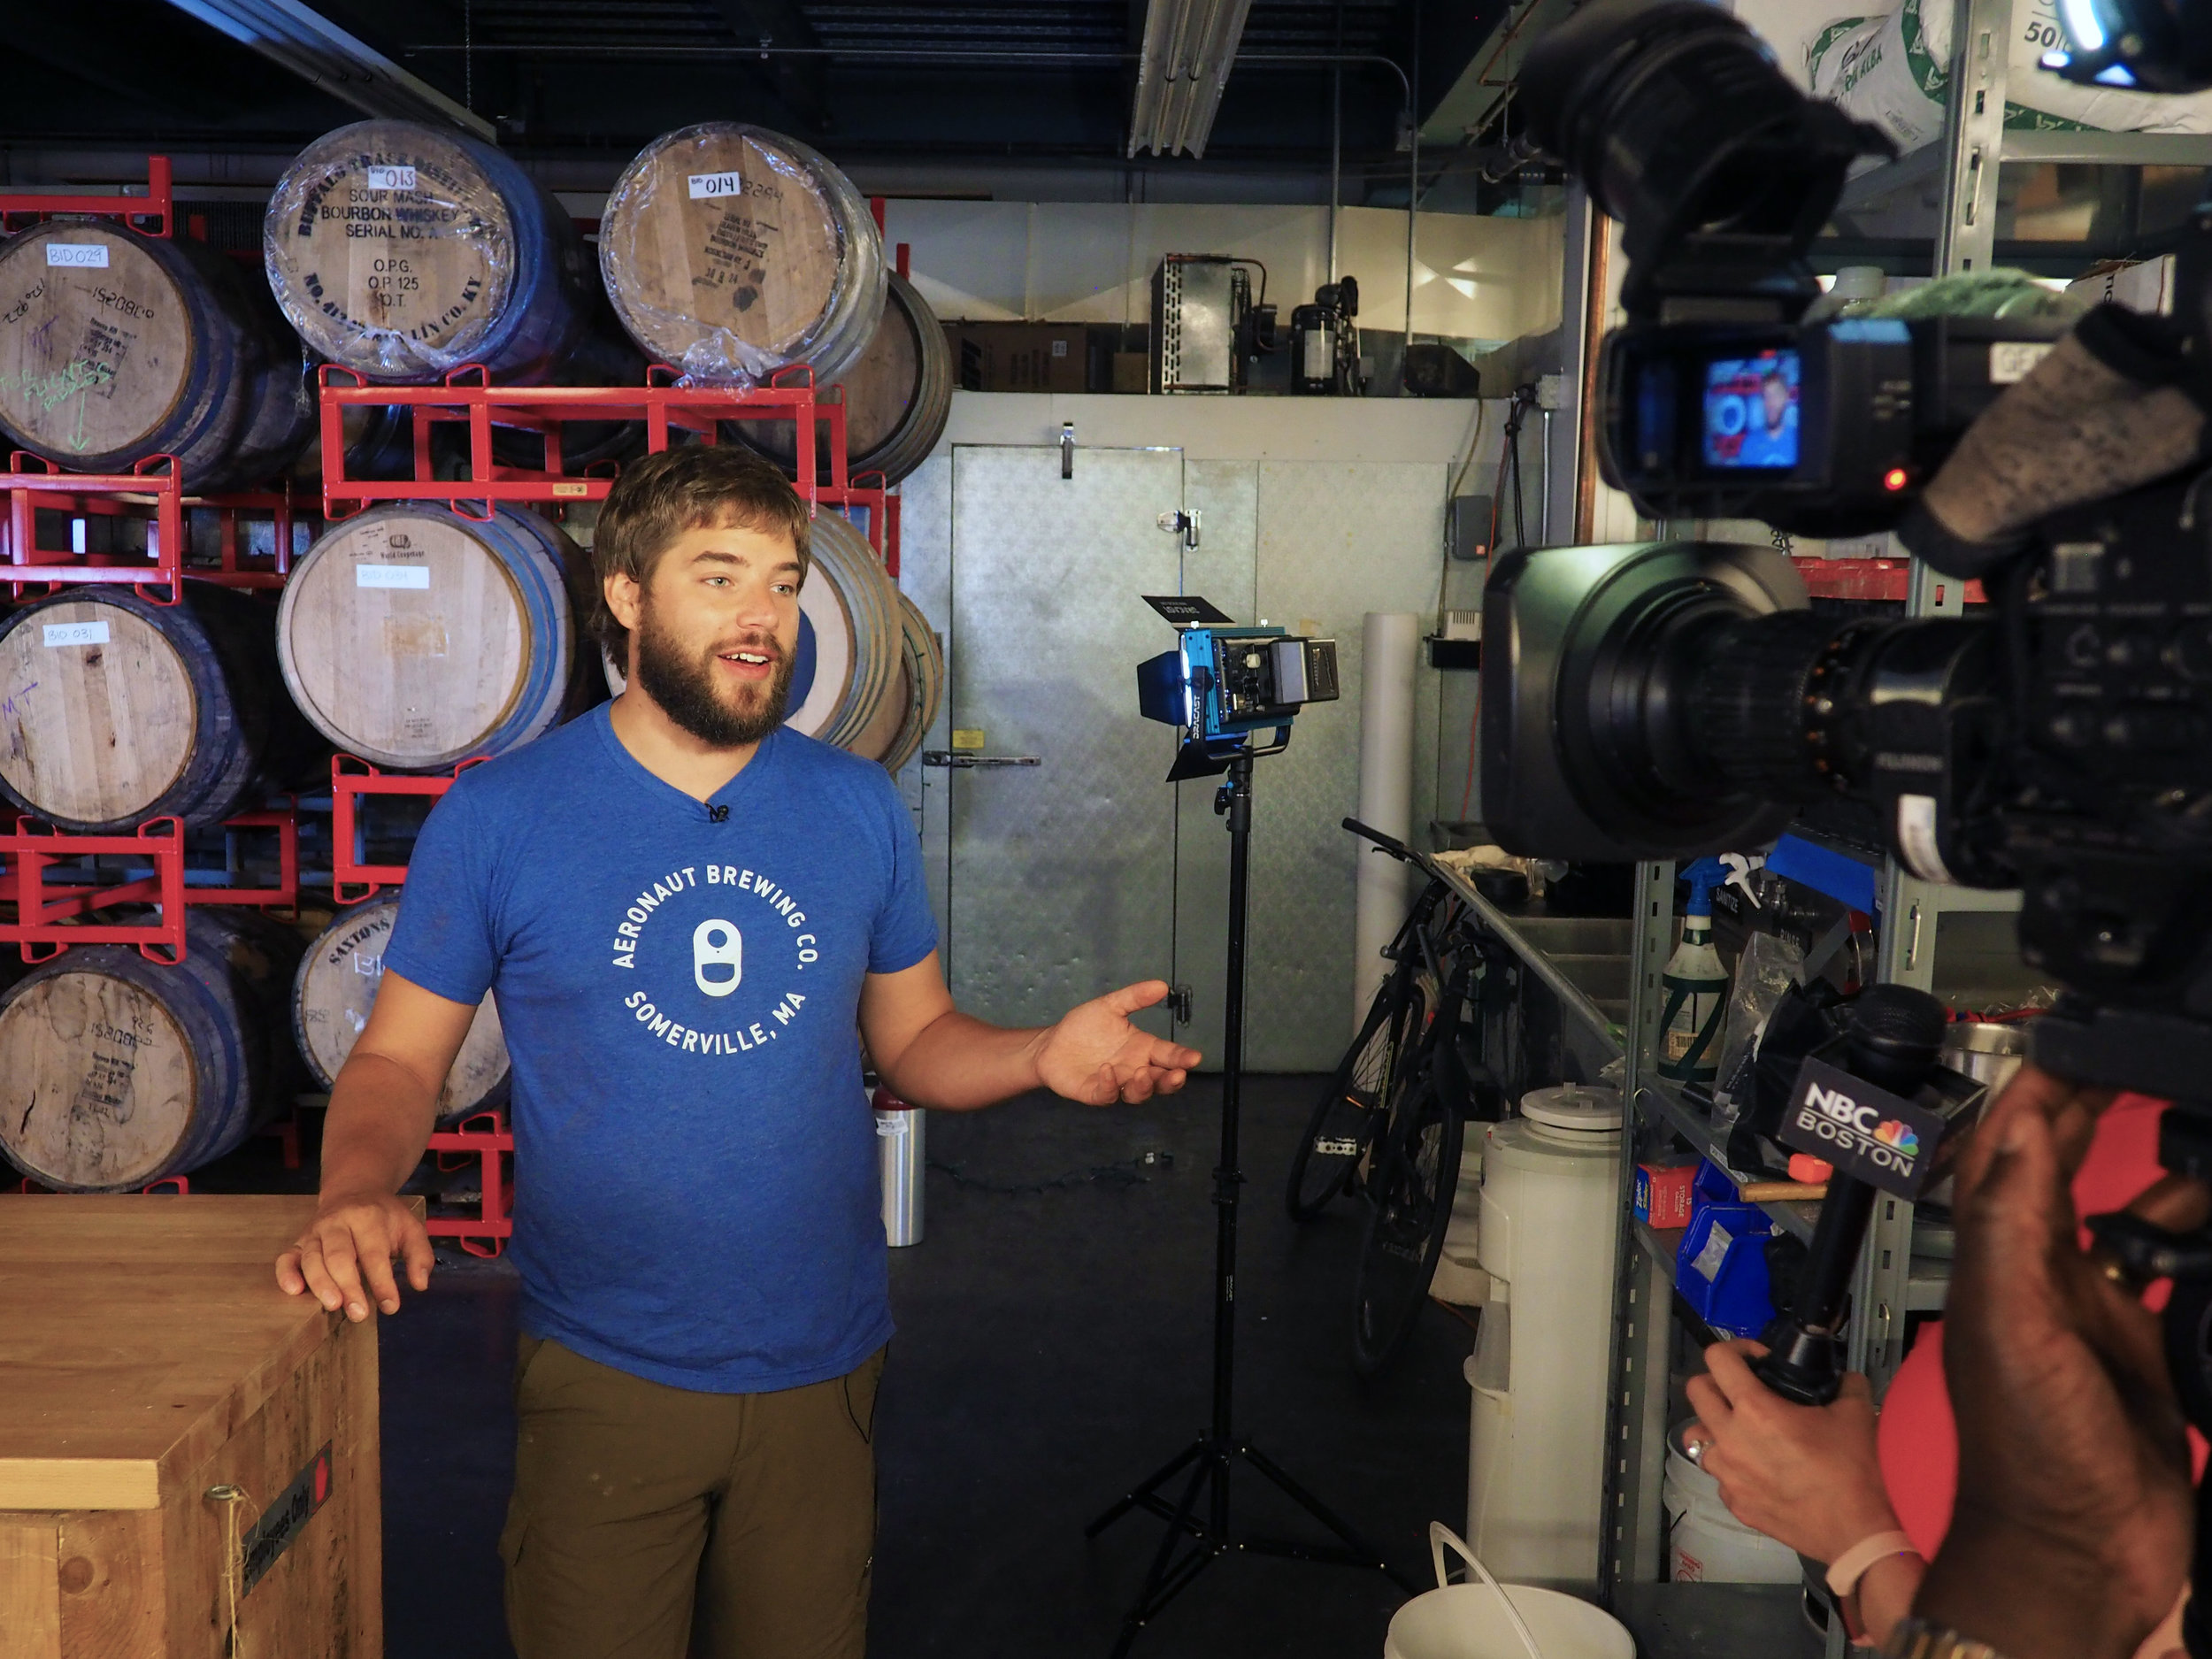 Managing an interview at Aeronaut Brewing Co._photo by Kate Weiser